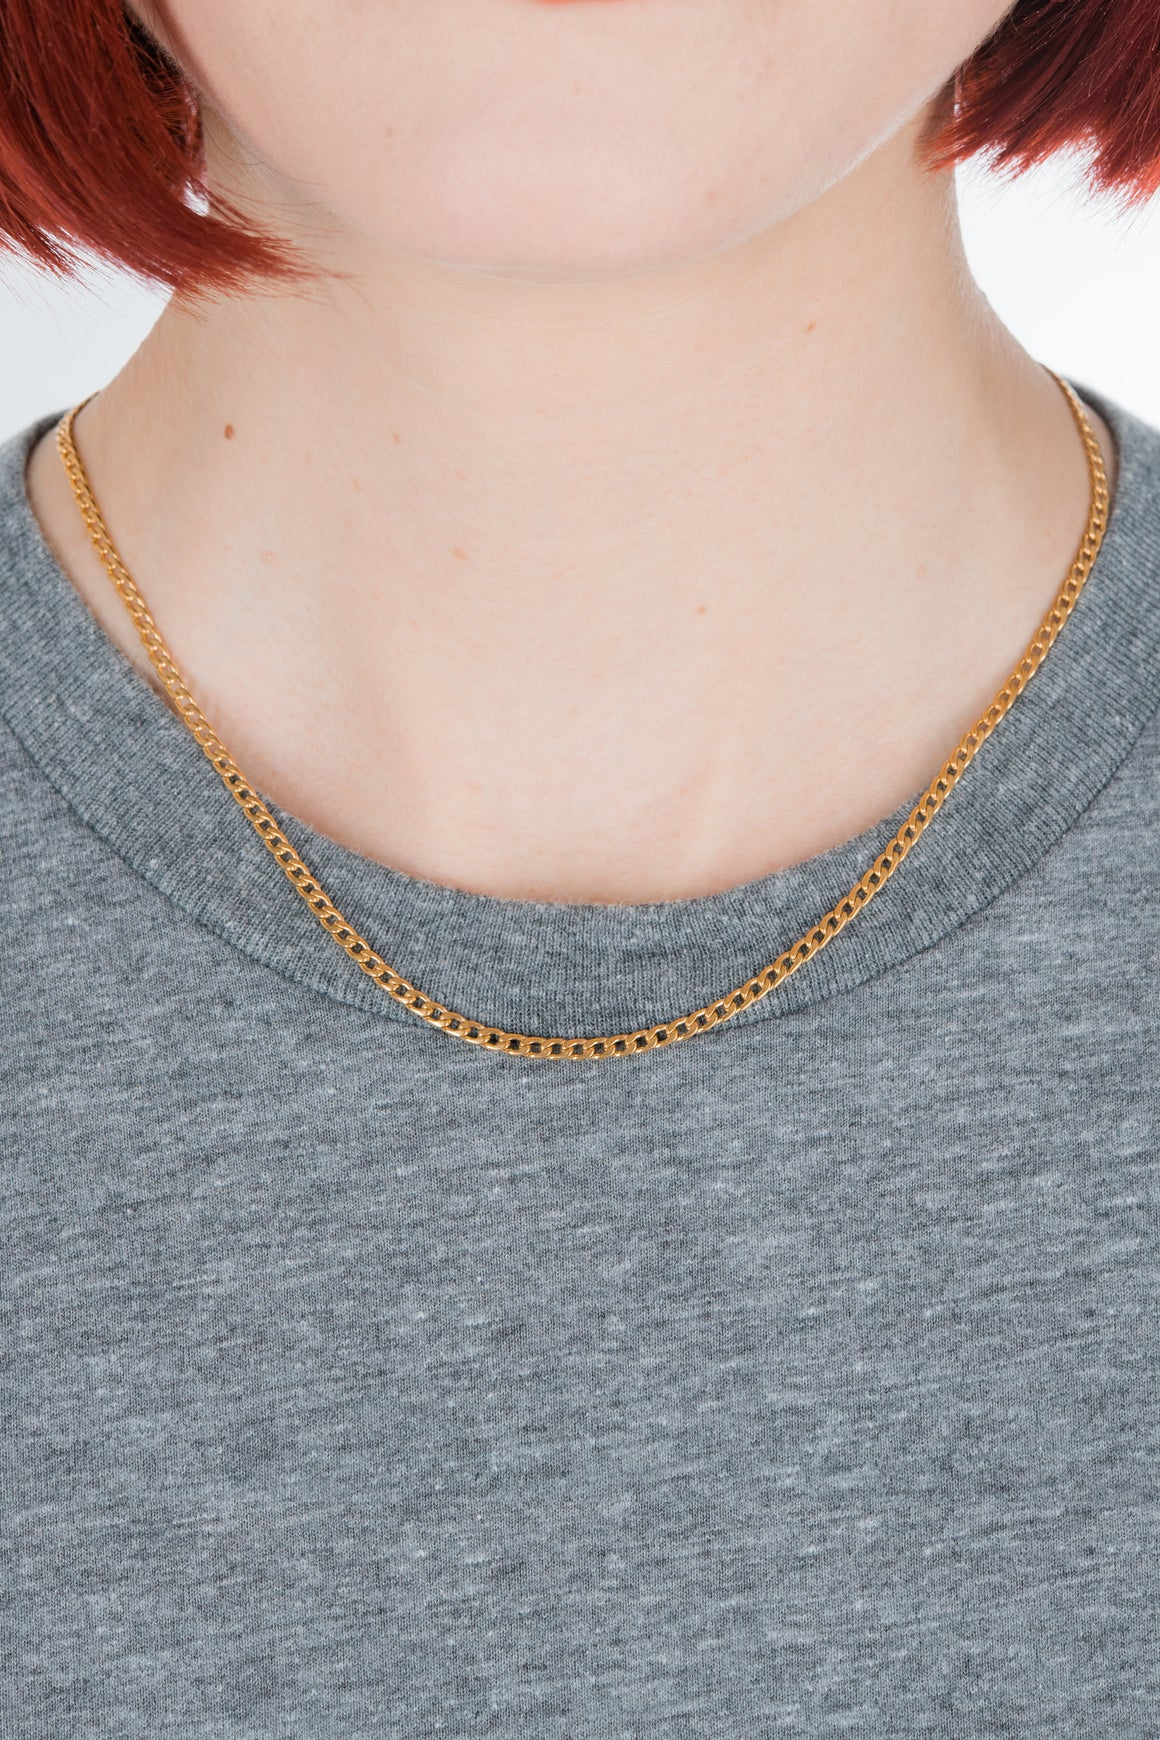 Cuban Chain in Gold - Philistine